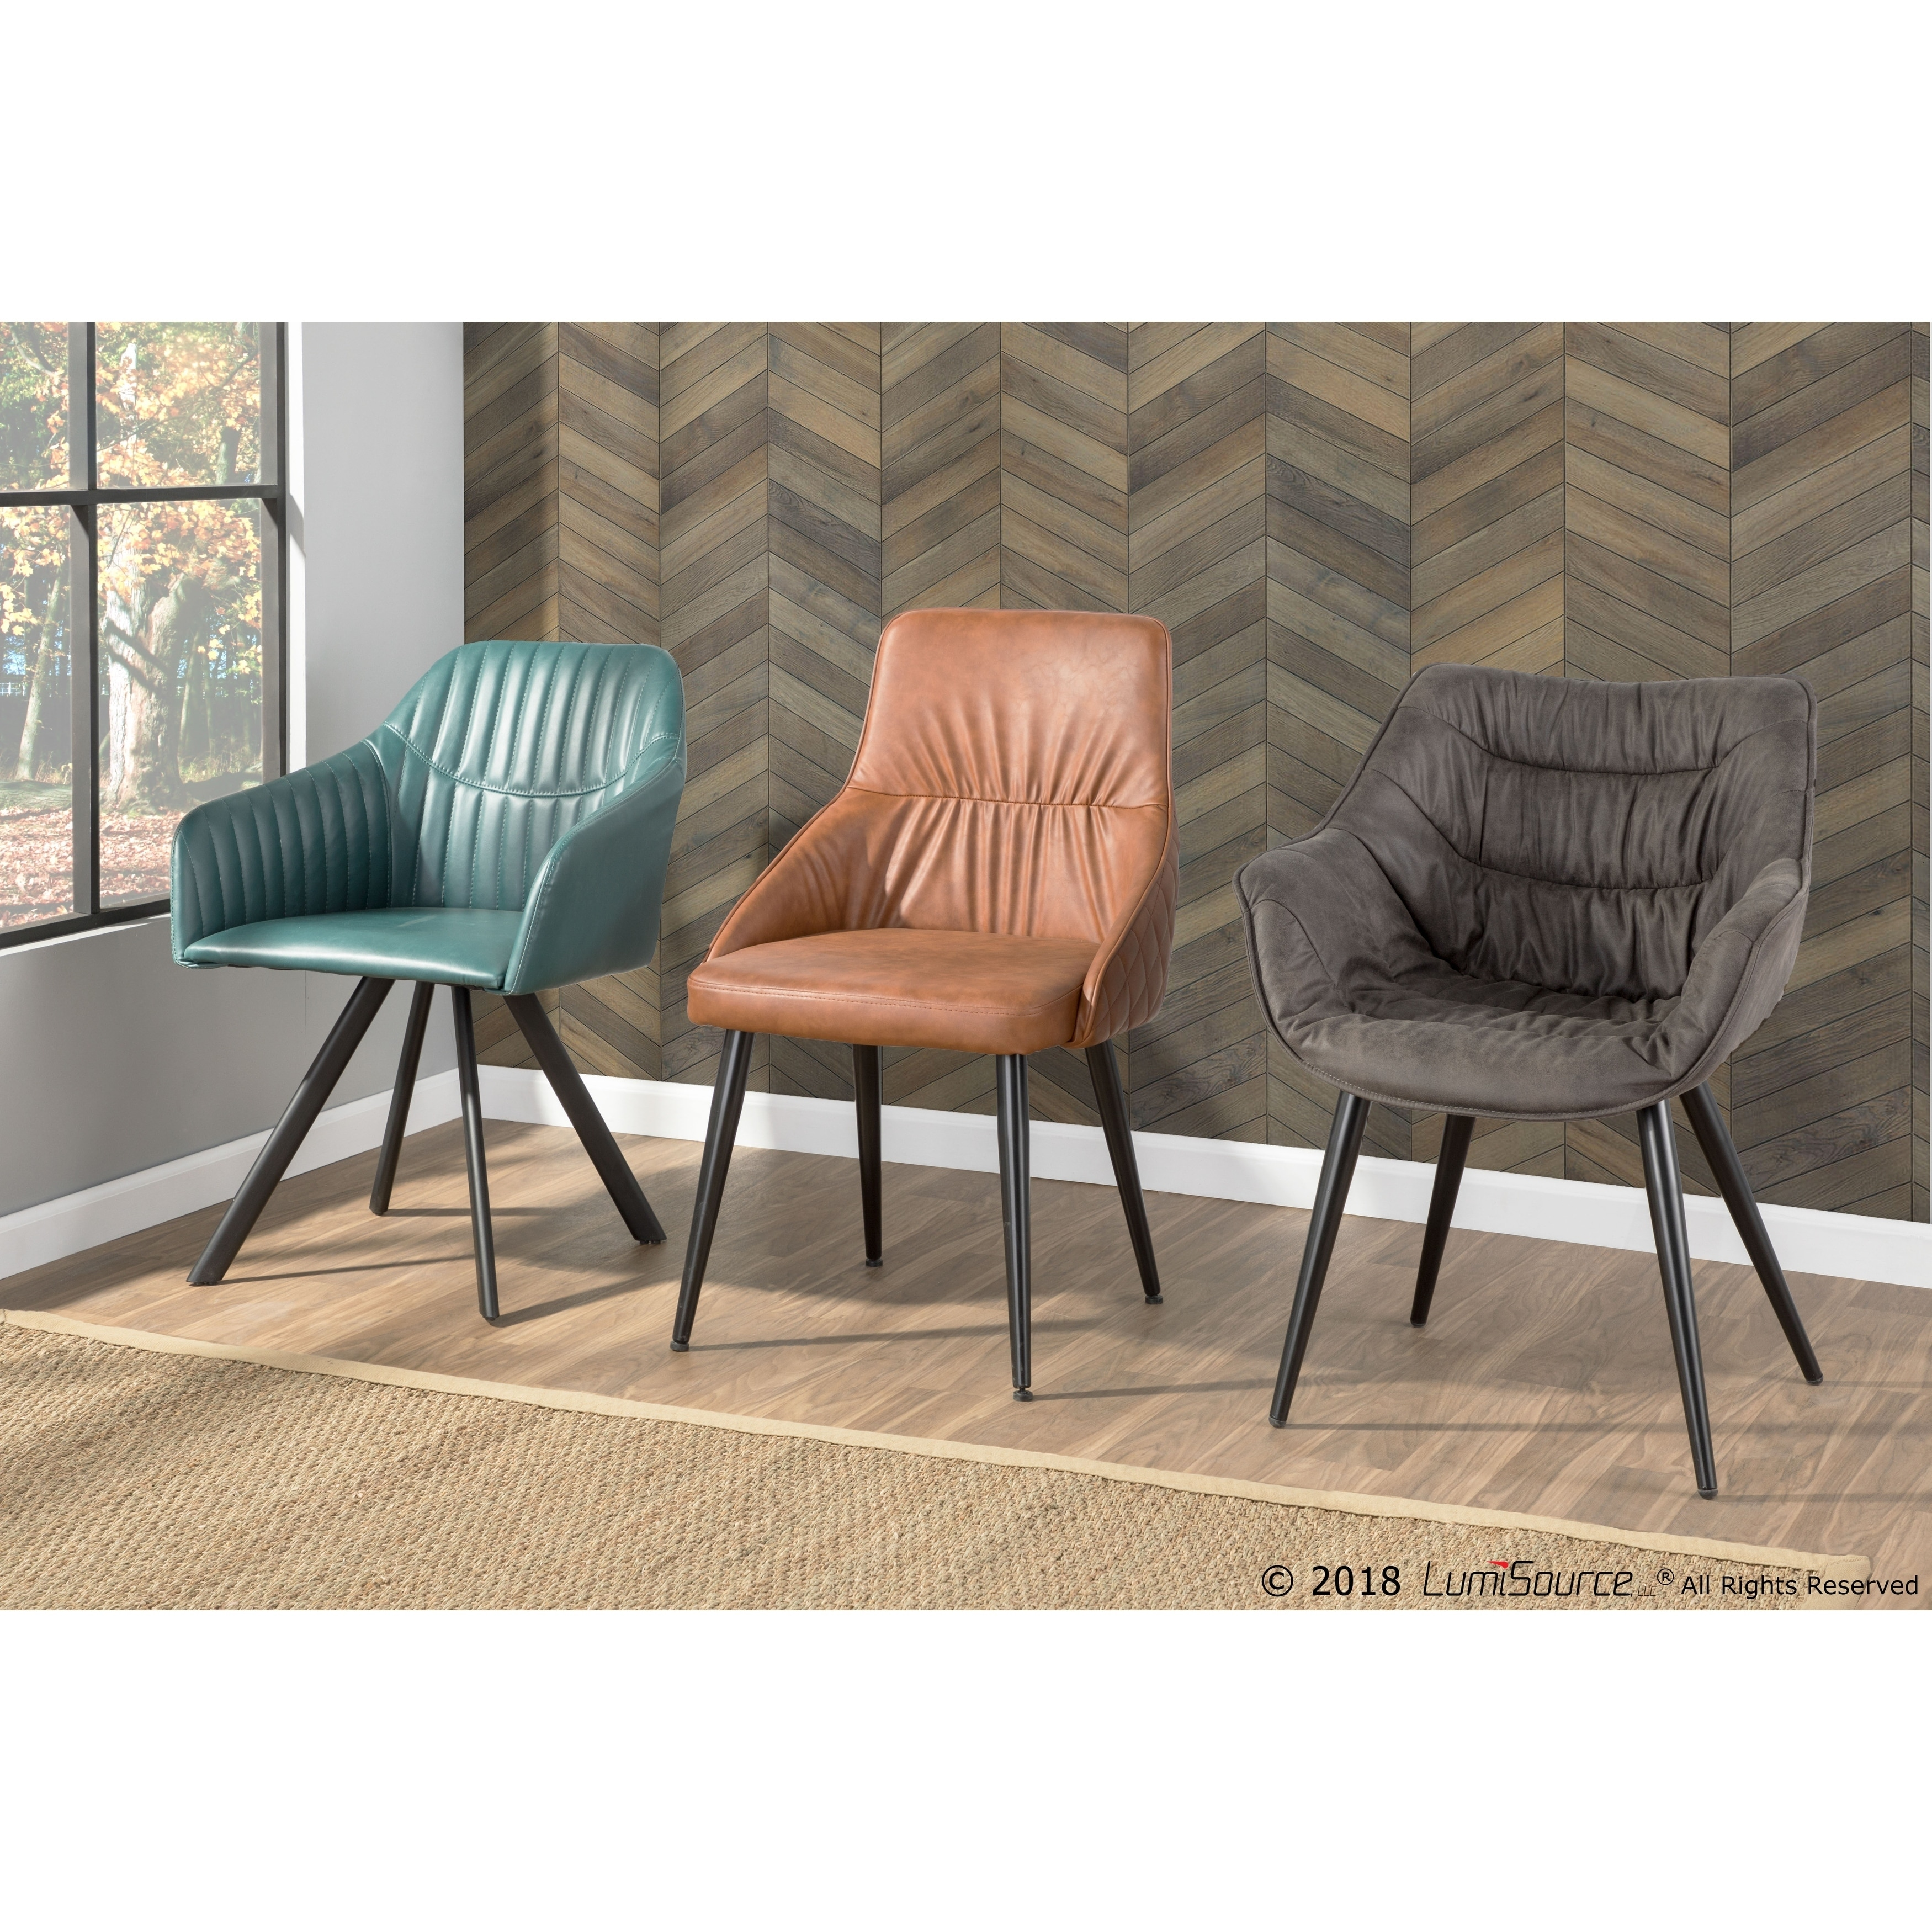 Alden Contemporary Dining/Accent Chair in Brown Faux Leather with Quilted Backrest by LumiSource - Set of 2